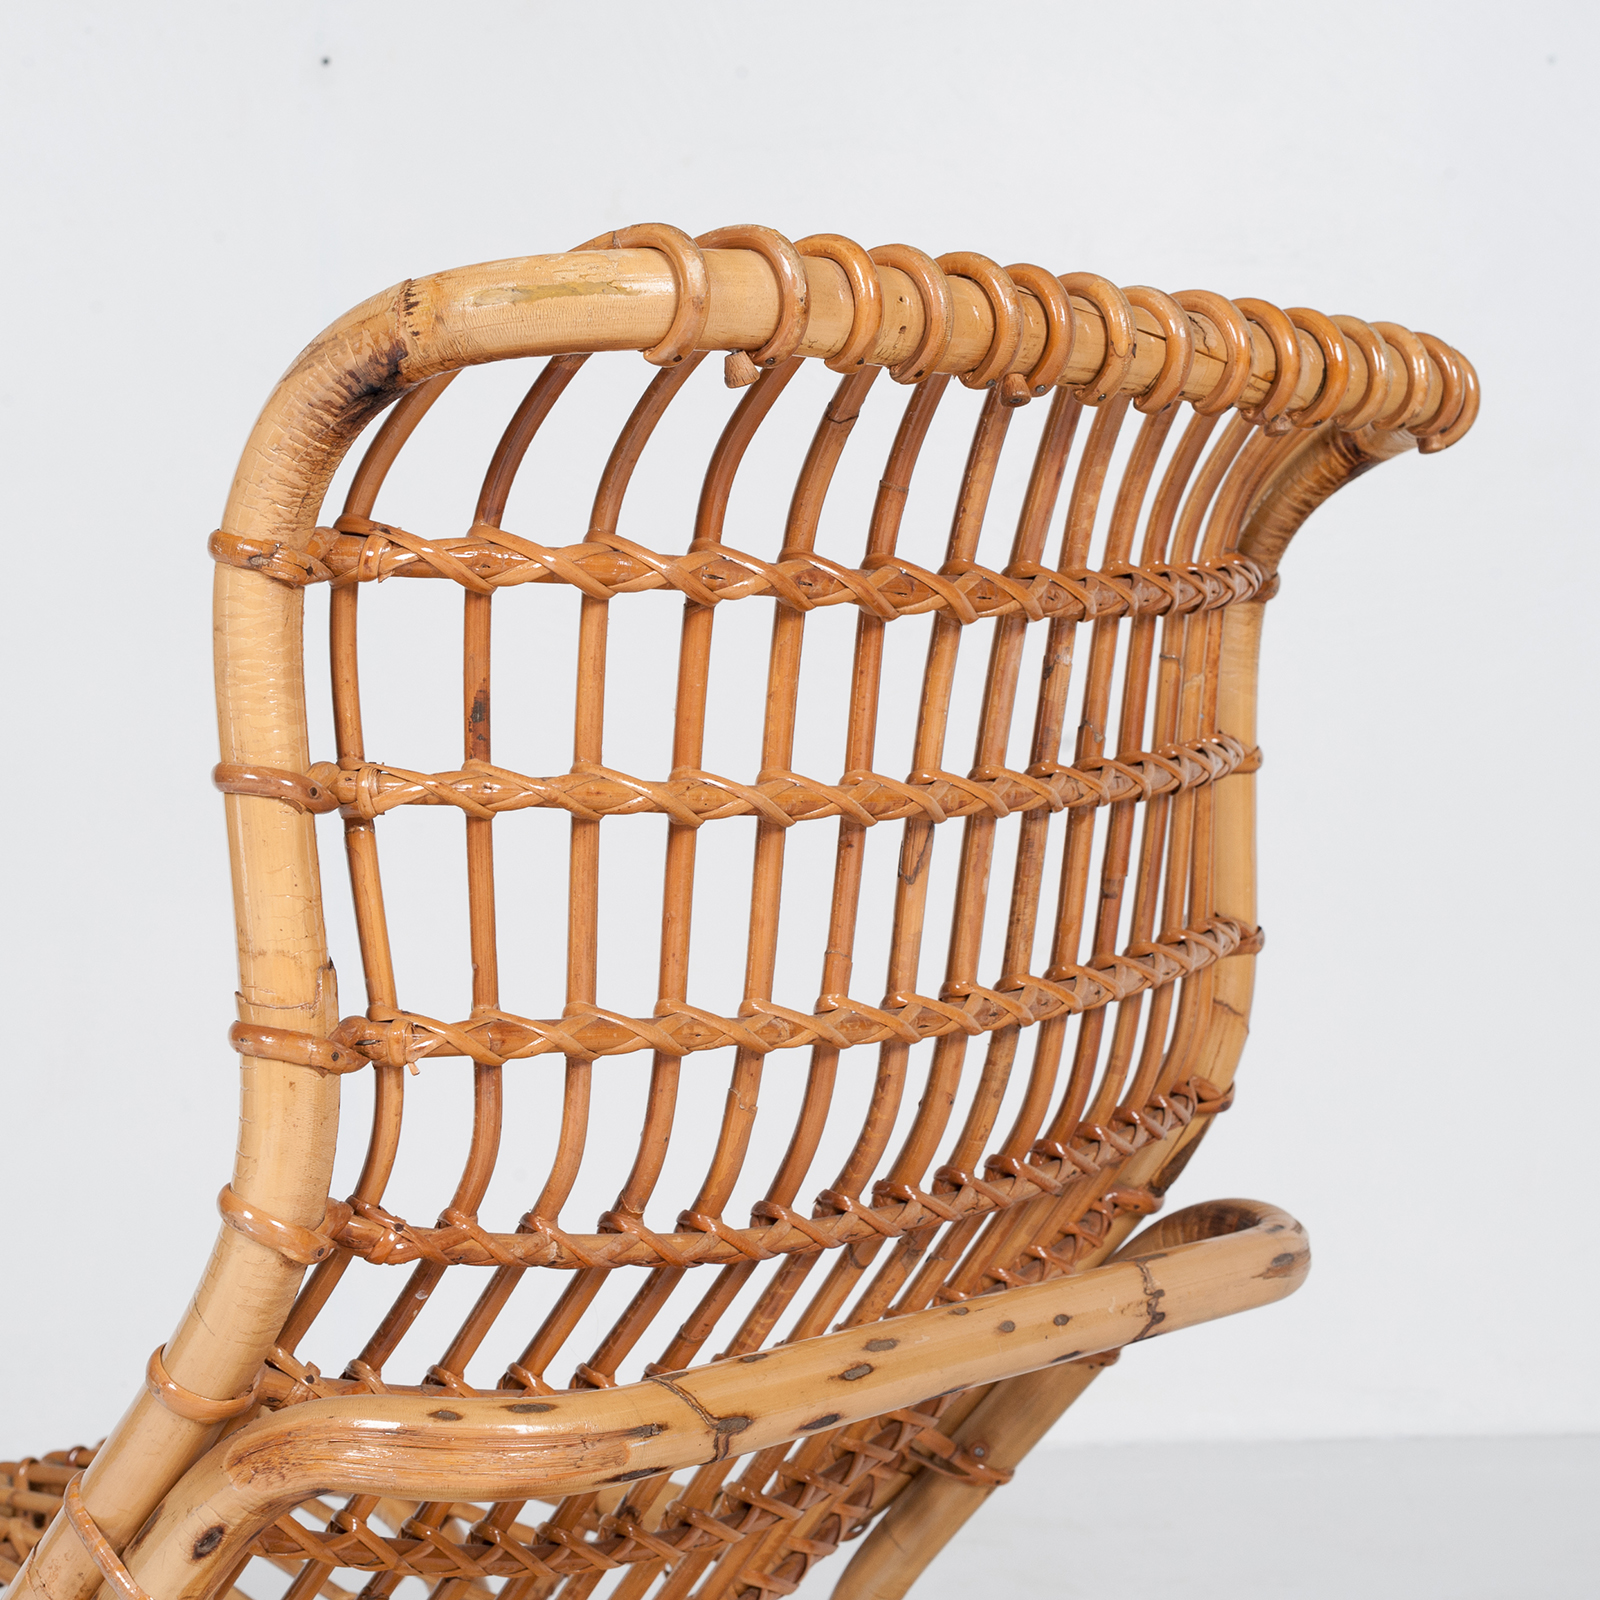 Lounge Chair By Tito Agnoli In Cane, 1960s, Italy58